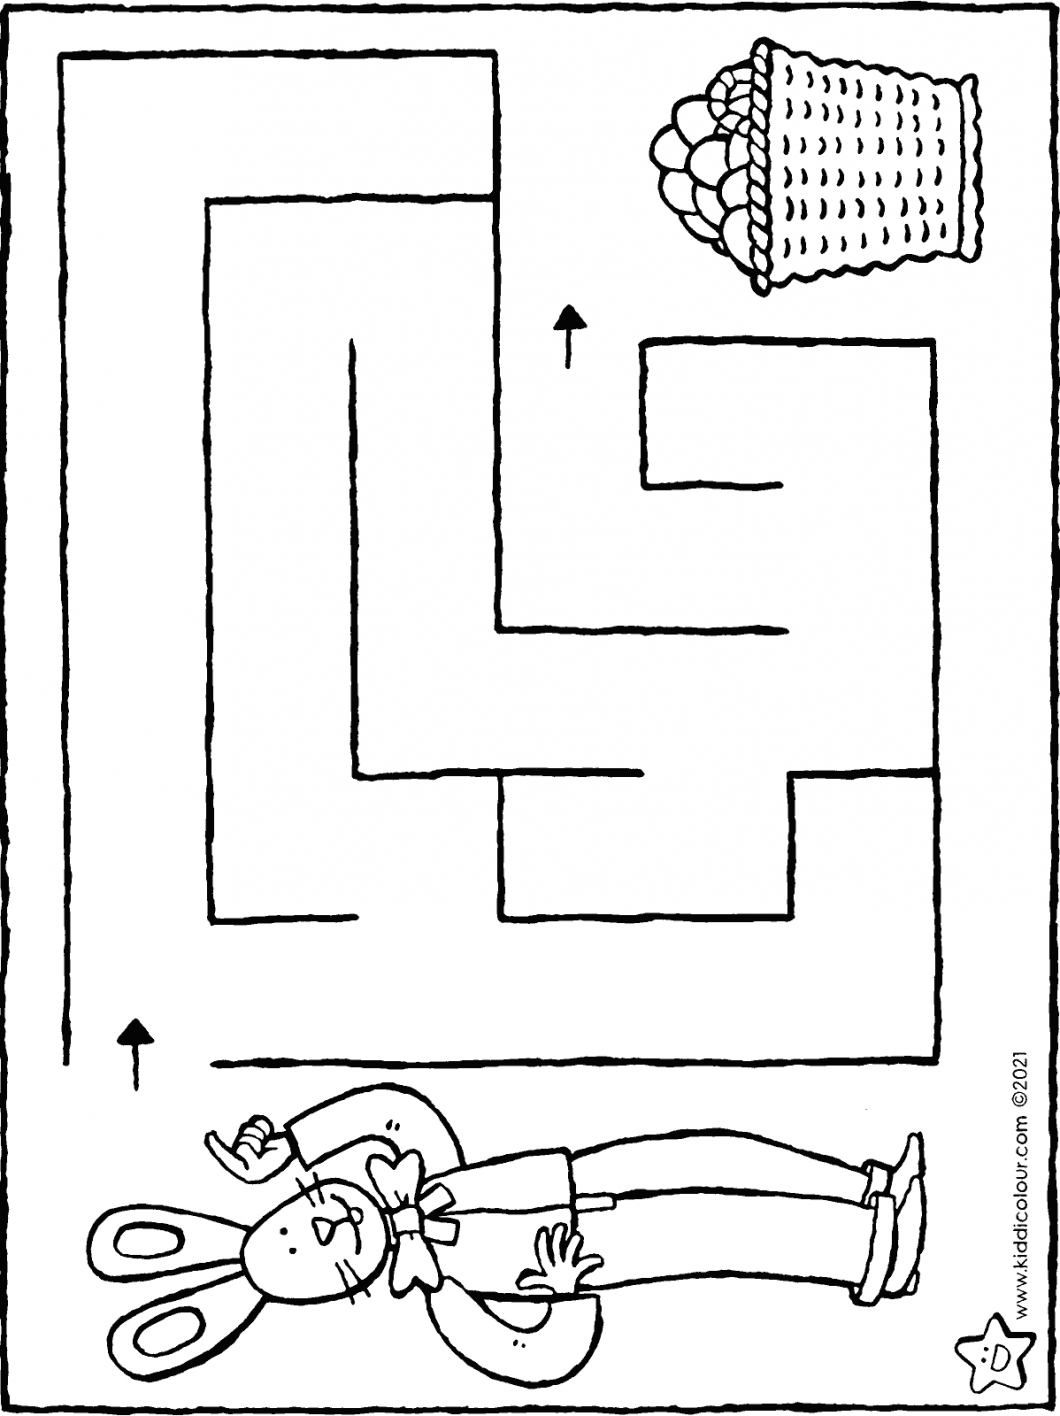 guide the Easter bunny to the basket of Easter eggs maze colouring page drawing picture 01H